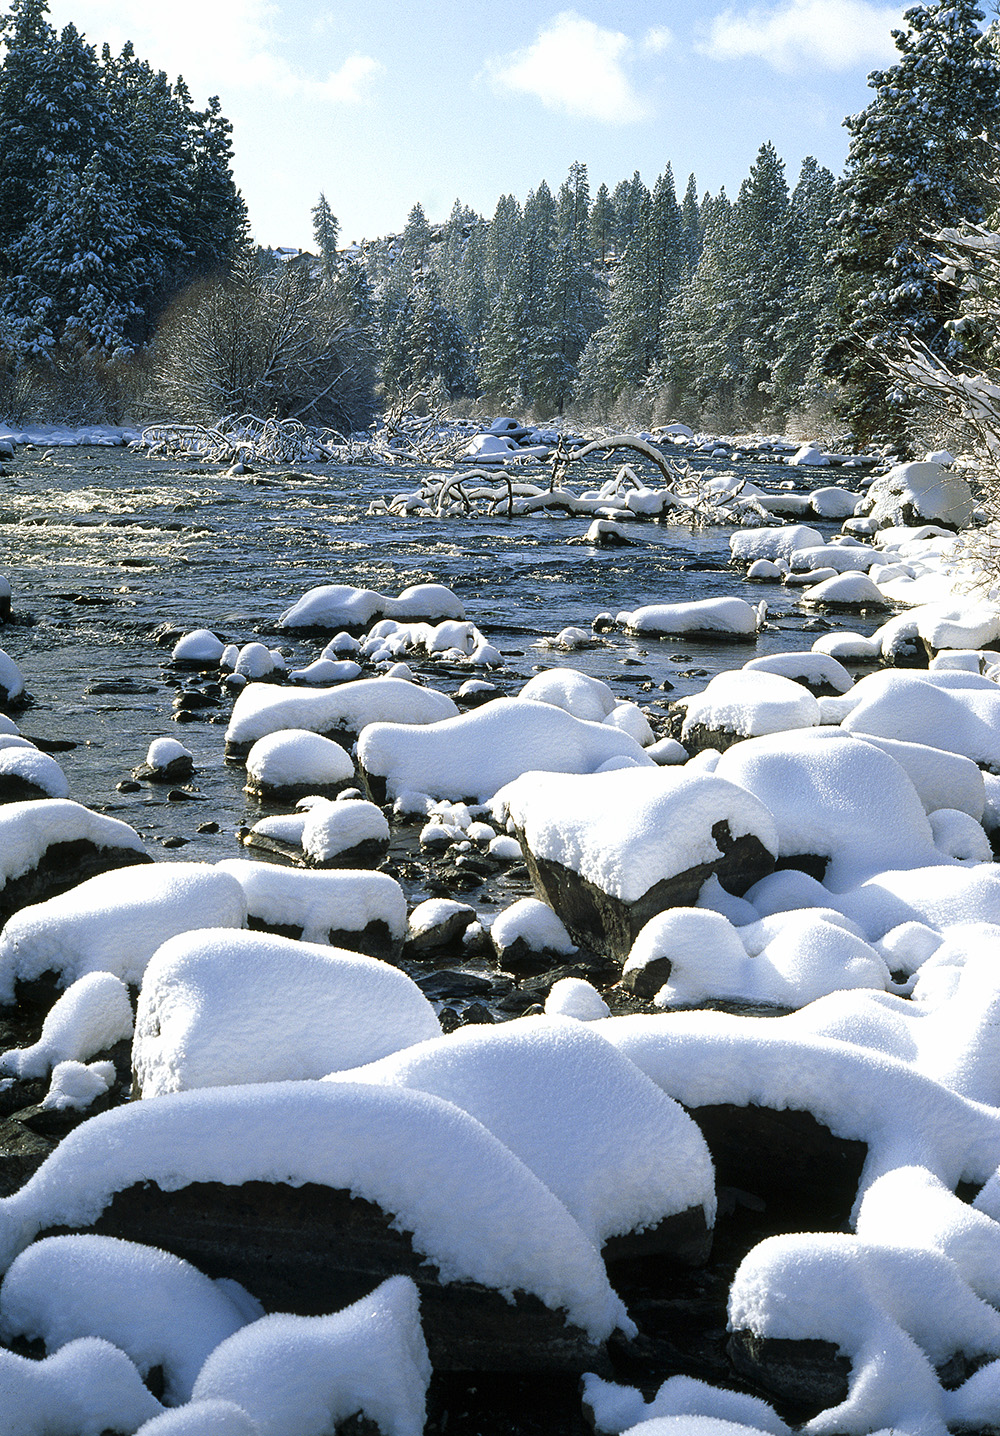 Snowy River Scenery at Mount Bachelor Village